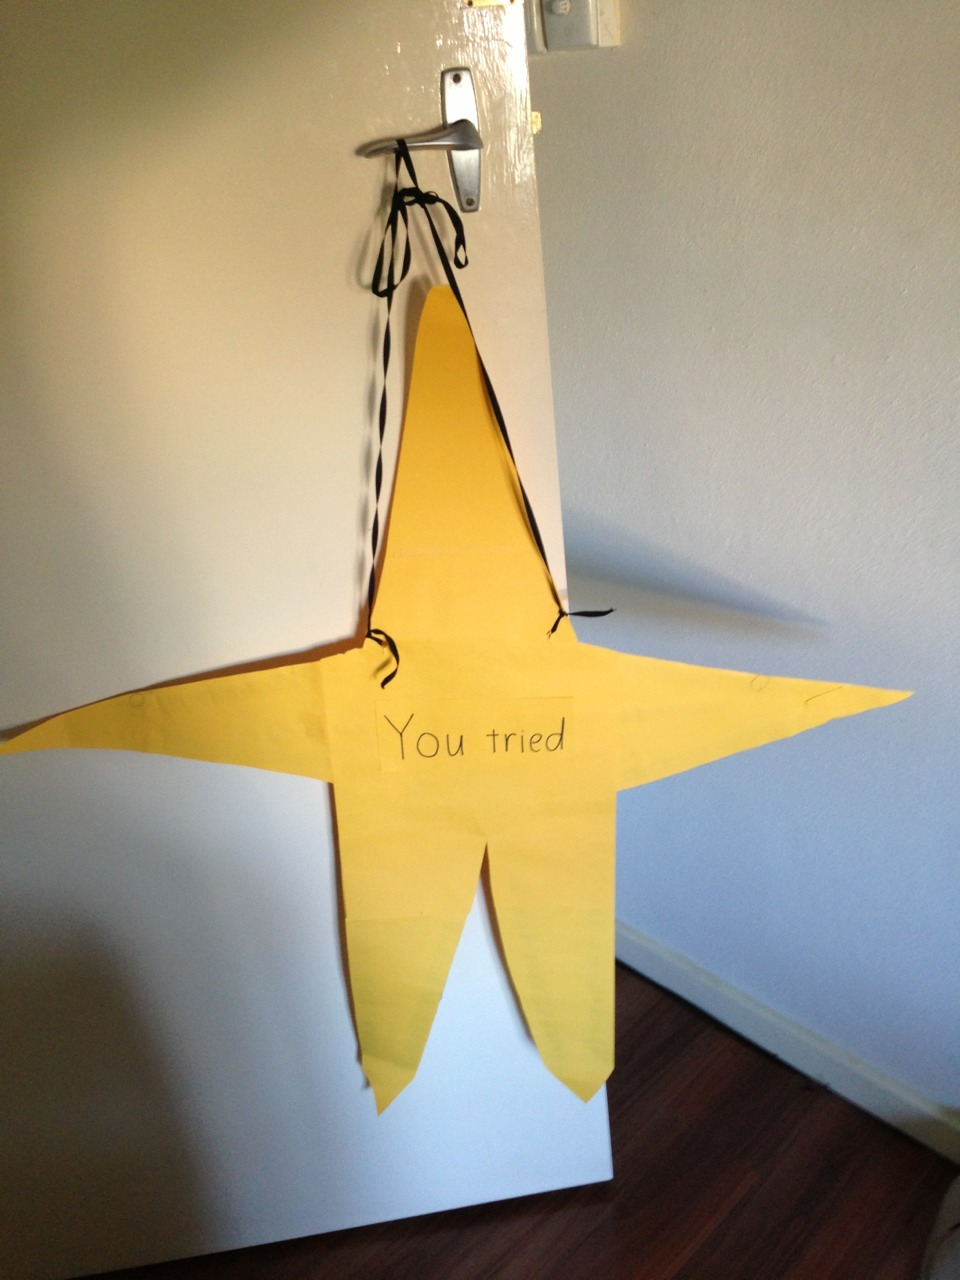 "lolsfunny:  laughcentre:  I TRIED TO MAKE A YELLOW STAR FOR ATHELTICS DAY TOMORROW AND OH MY GOD IT LOOKS SO WEIRD  ""You tried"" as in you tried making a star"